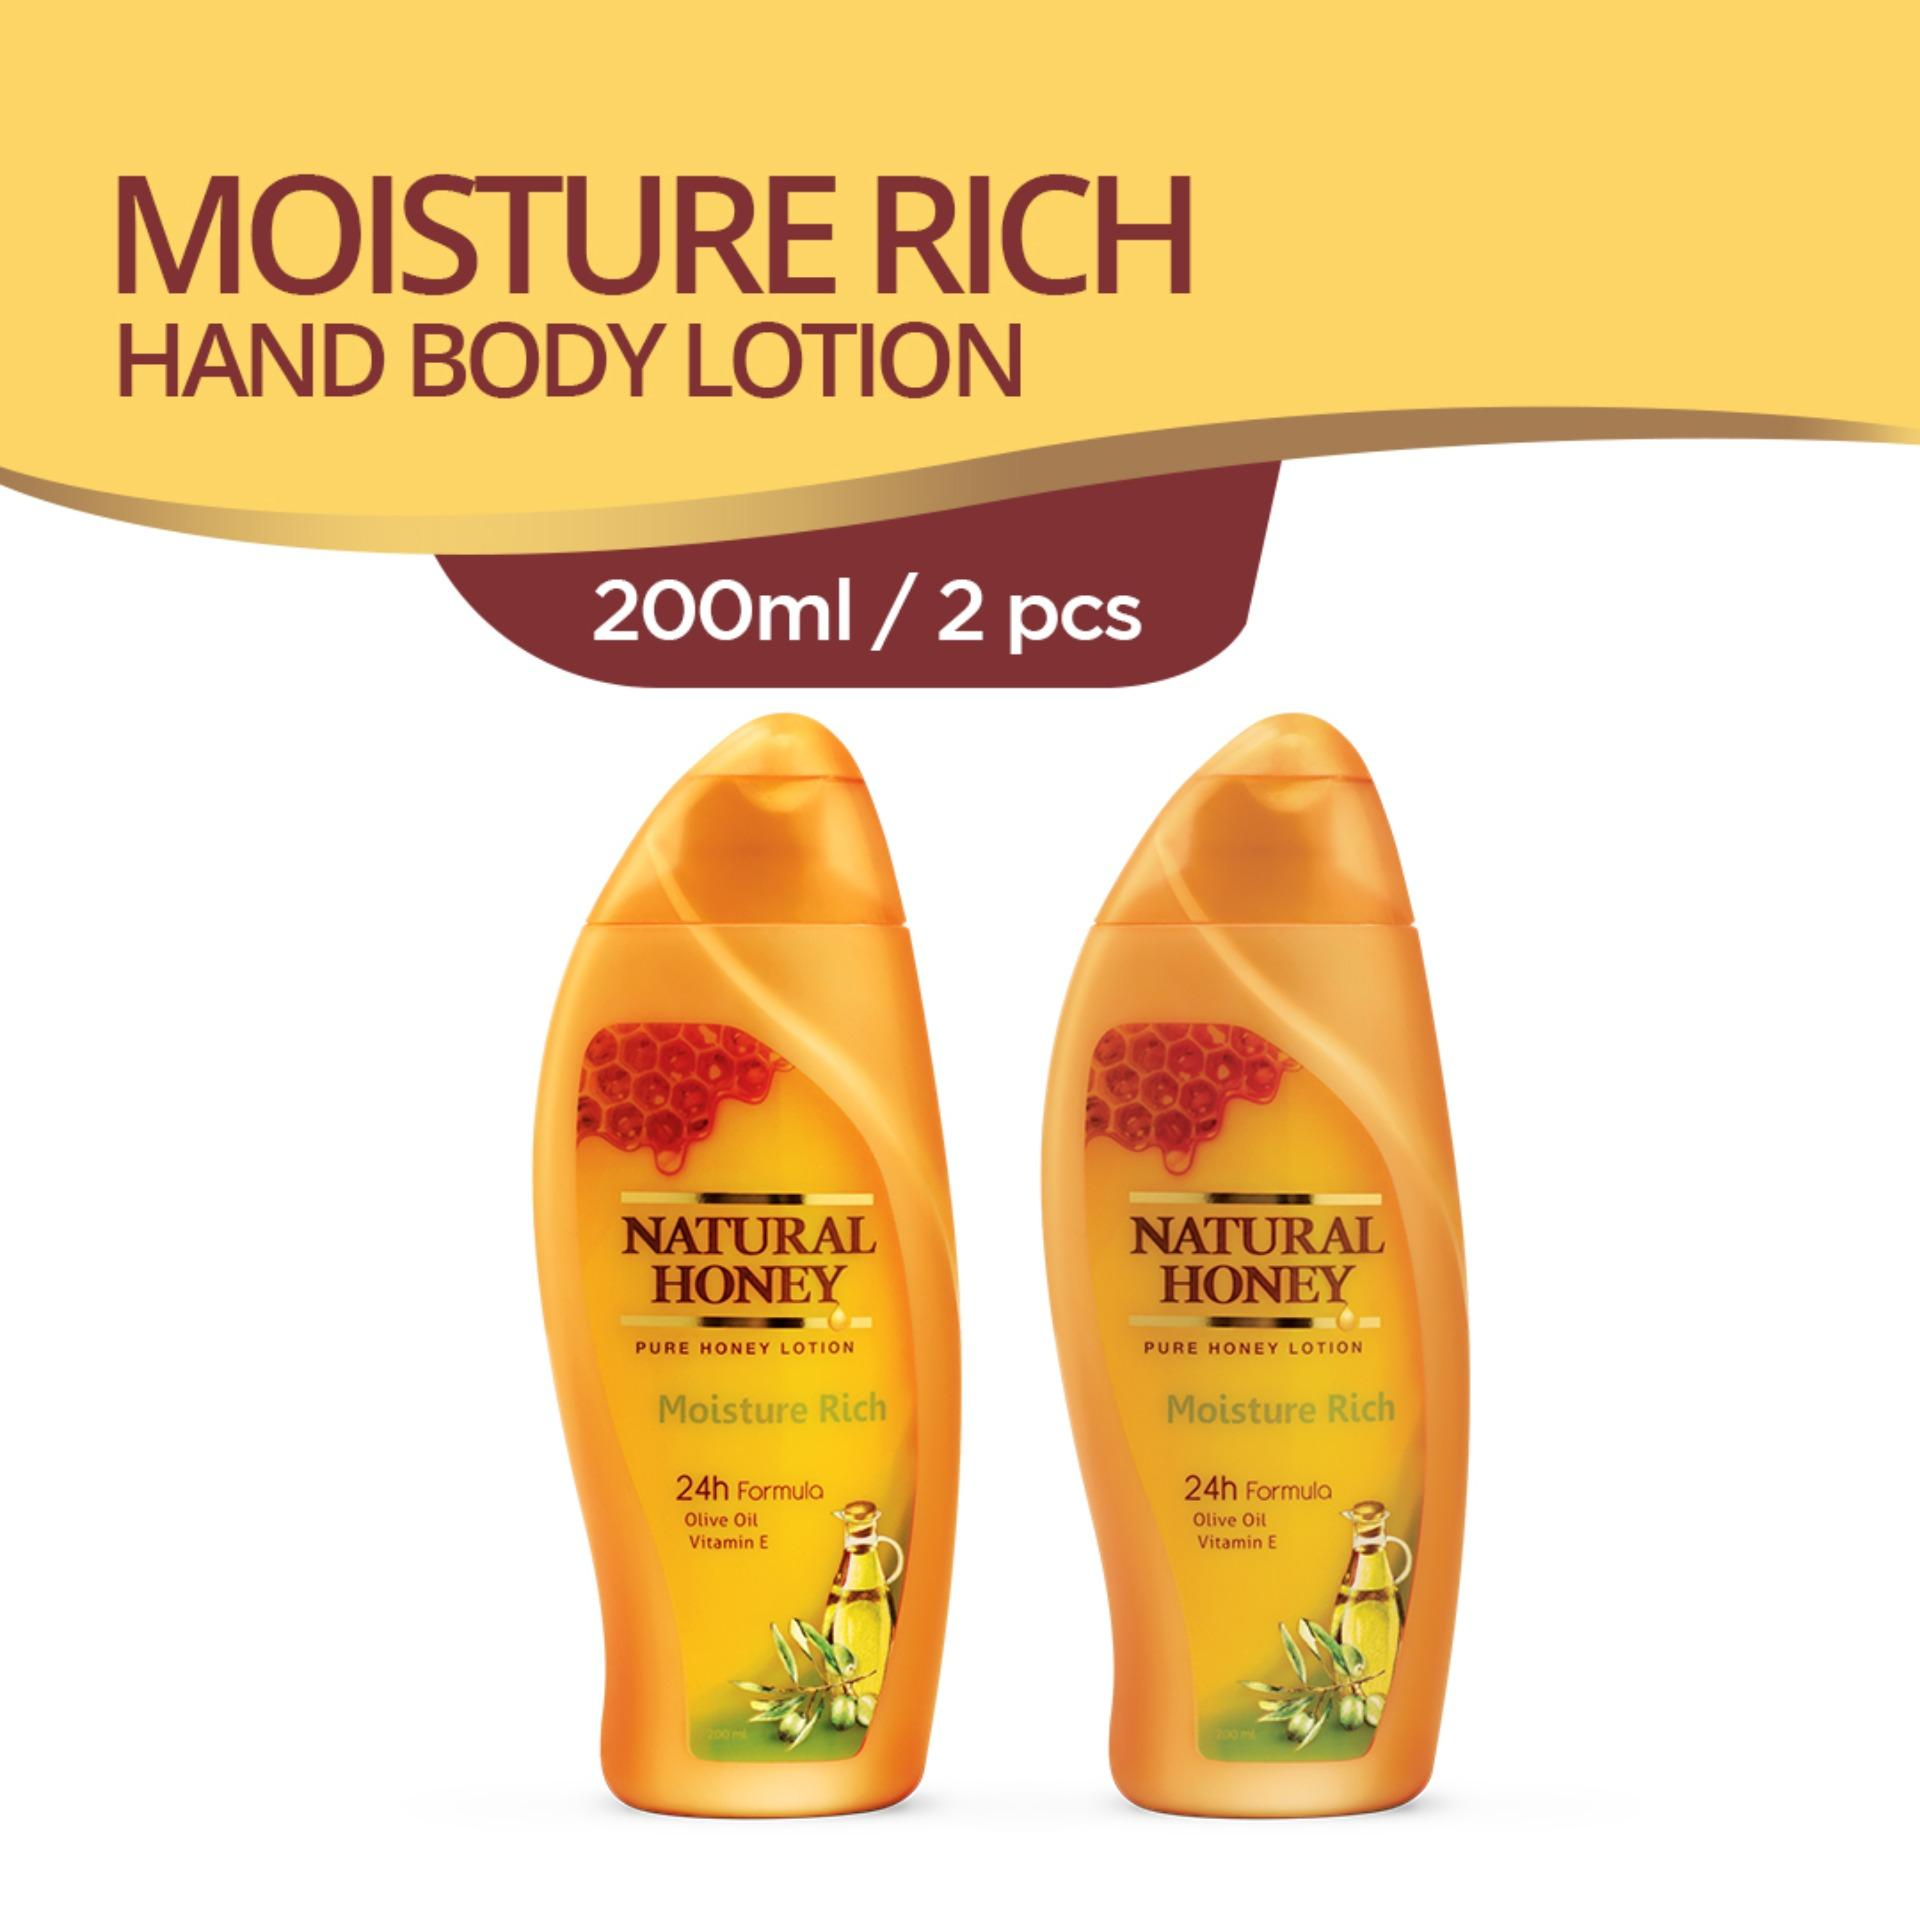 Buy Sell Cheapest Dolity 2pcs 200ml Best Quality Product Deals Durex Play Vibration Ring Free Kondom Ribbed Isi 3 Natural Honey Hand Body Lotion Moisture Rich 200 Ml 2